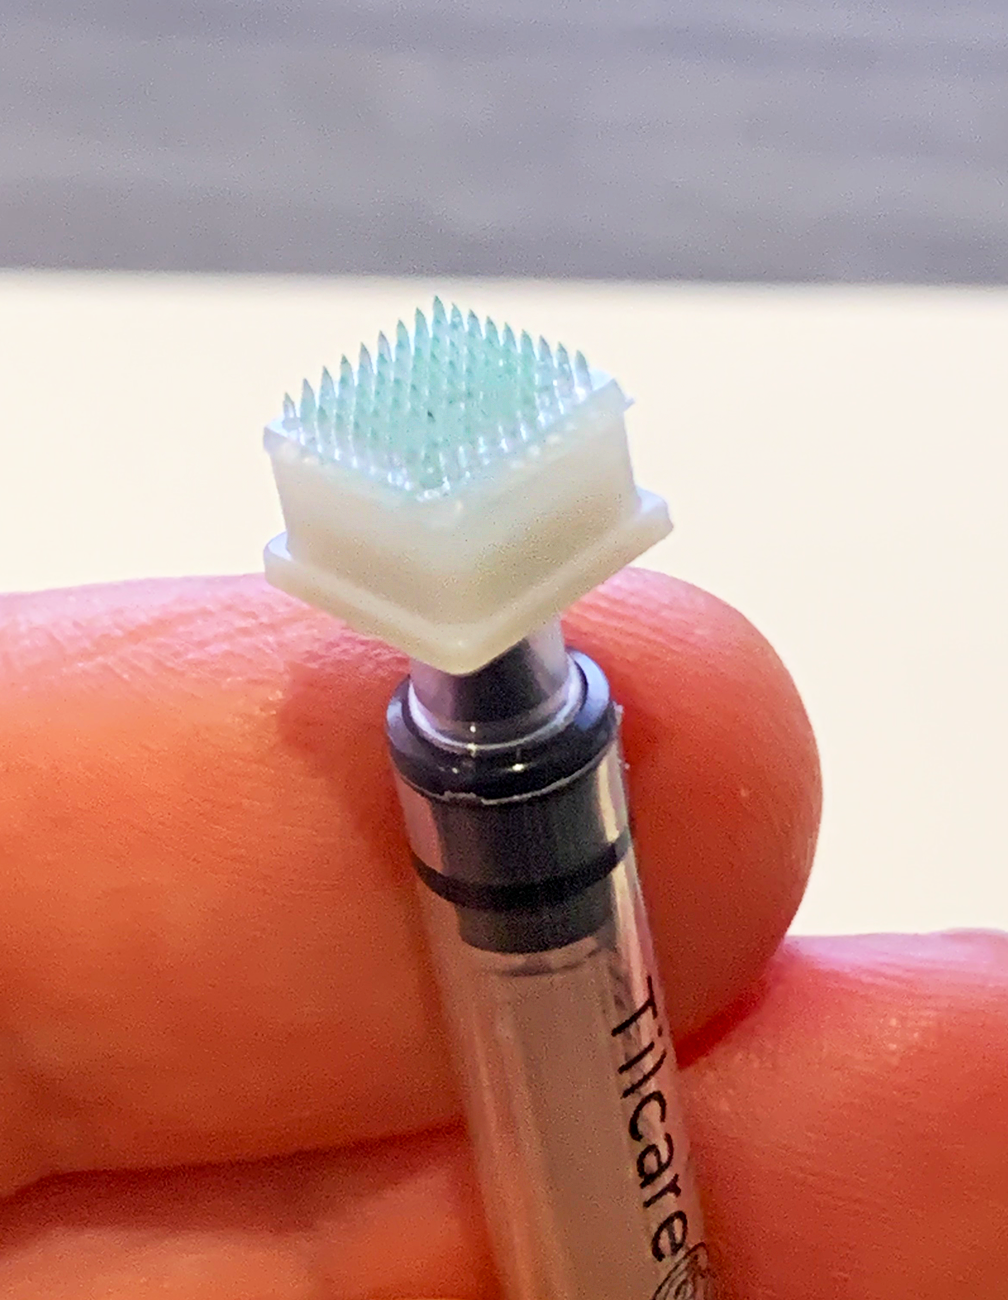 Fabricated-Hybrid-Microneedle-Arrays attached to a syringe with an adaptor